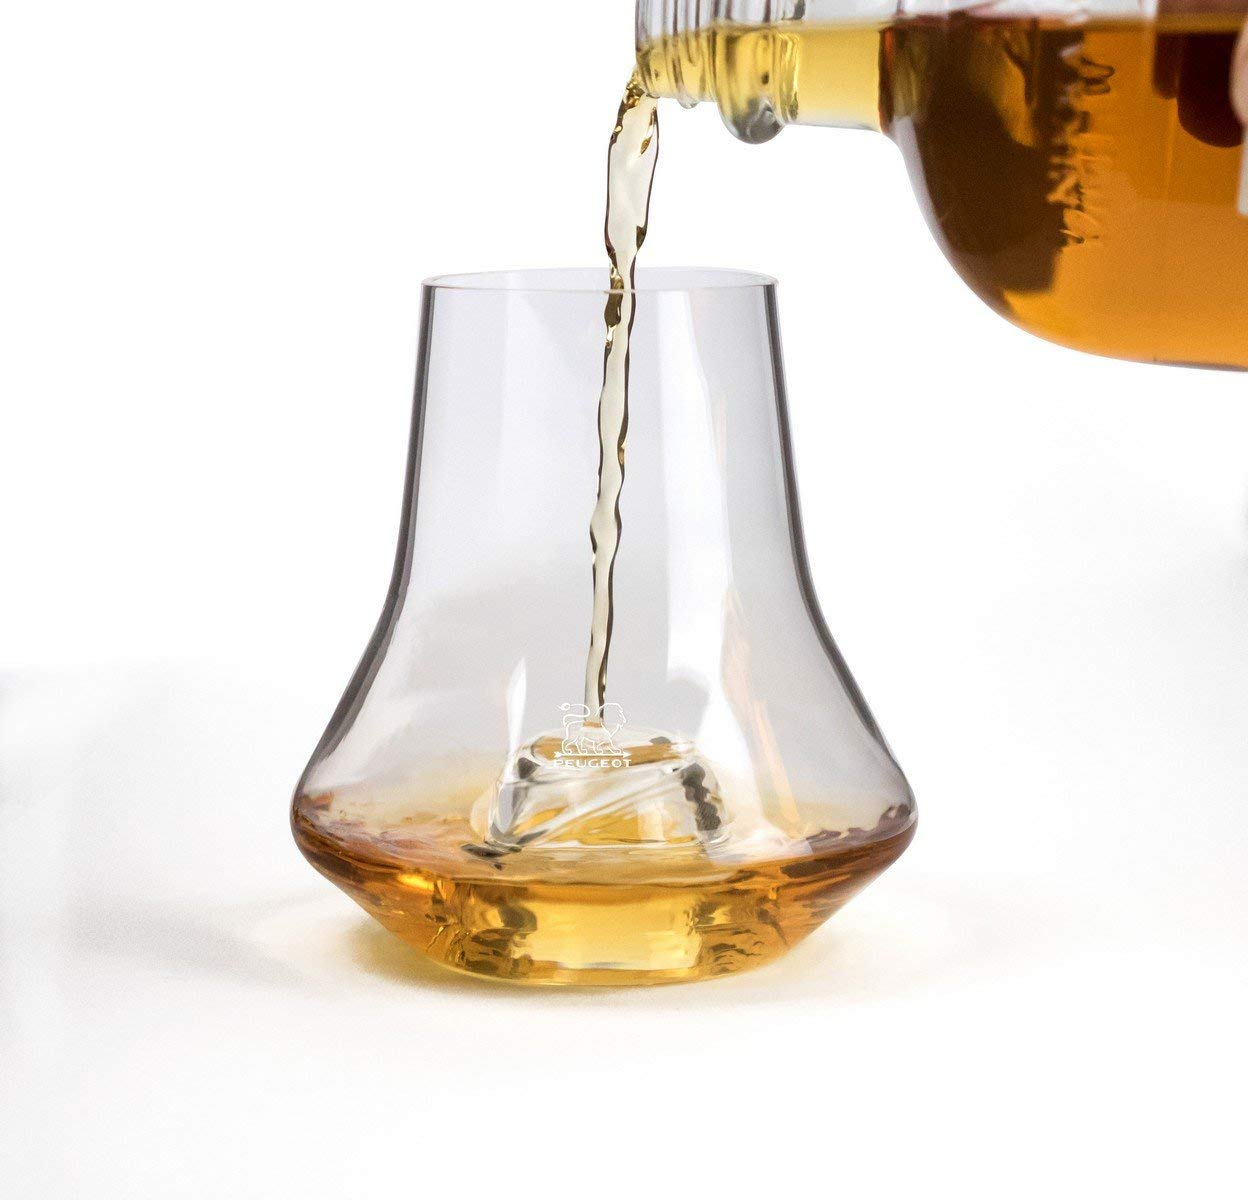 Peugeot Impitoyable Whisky Cordial Glass without Chilling Base